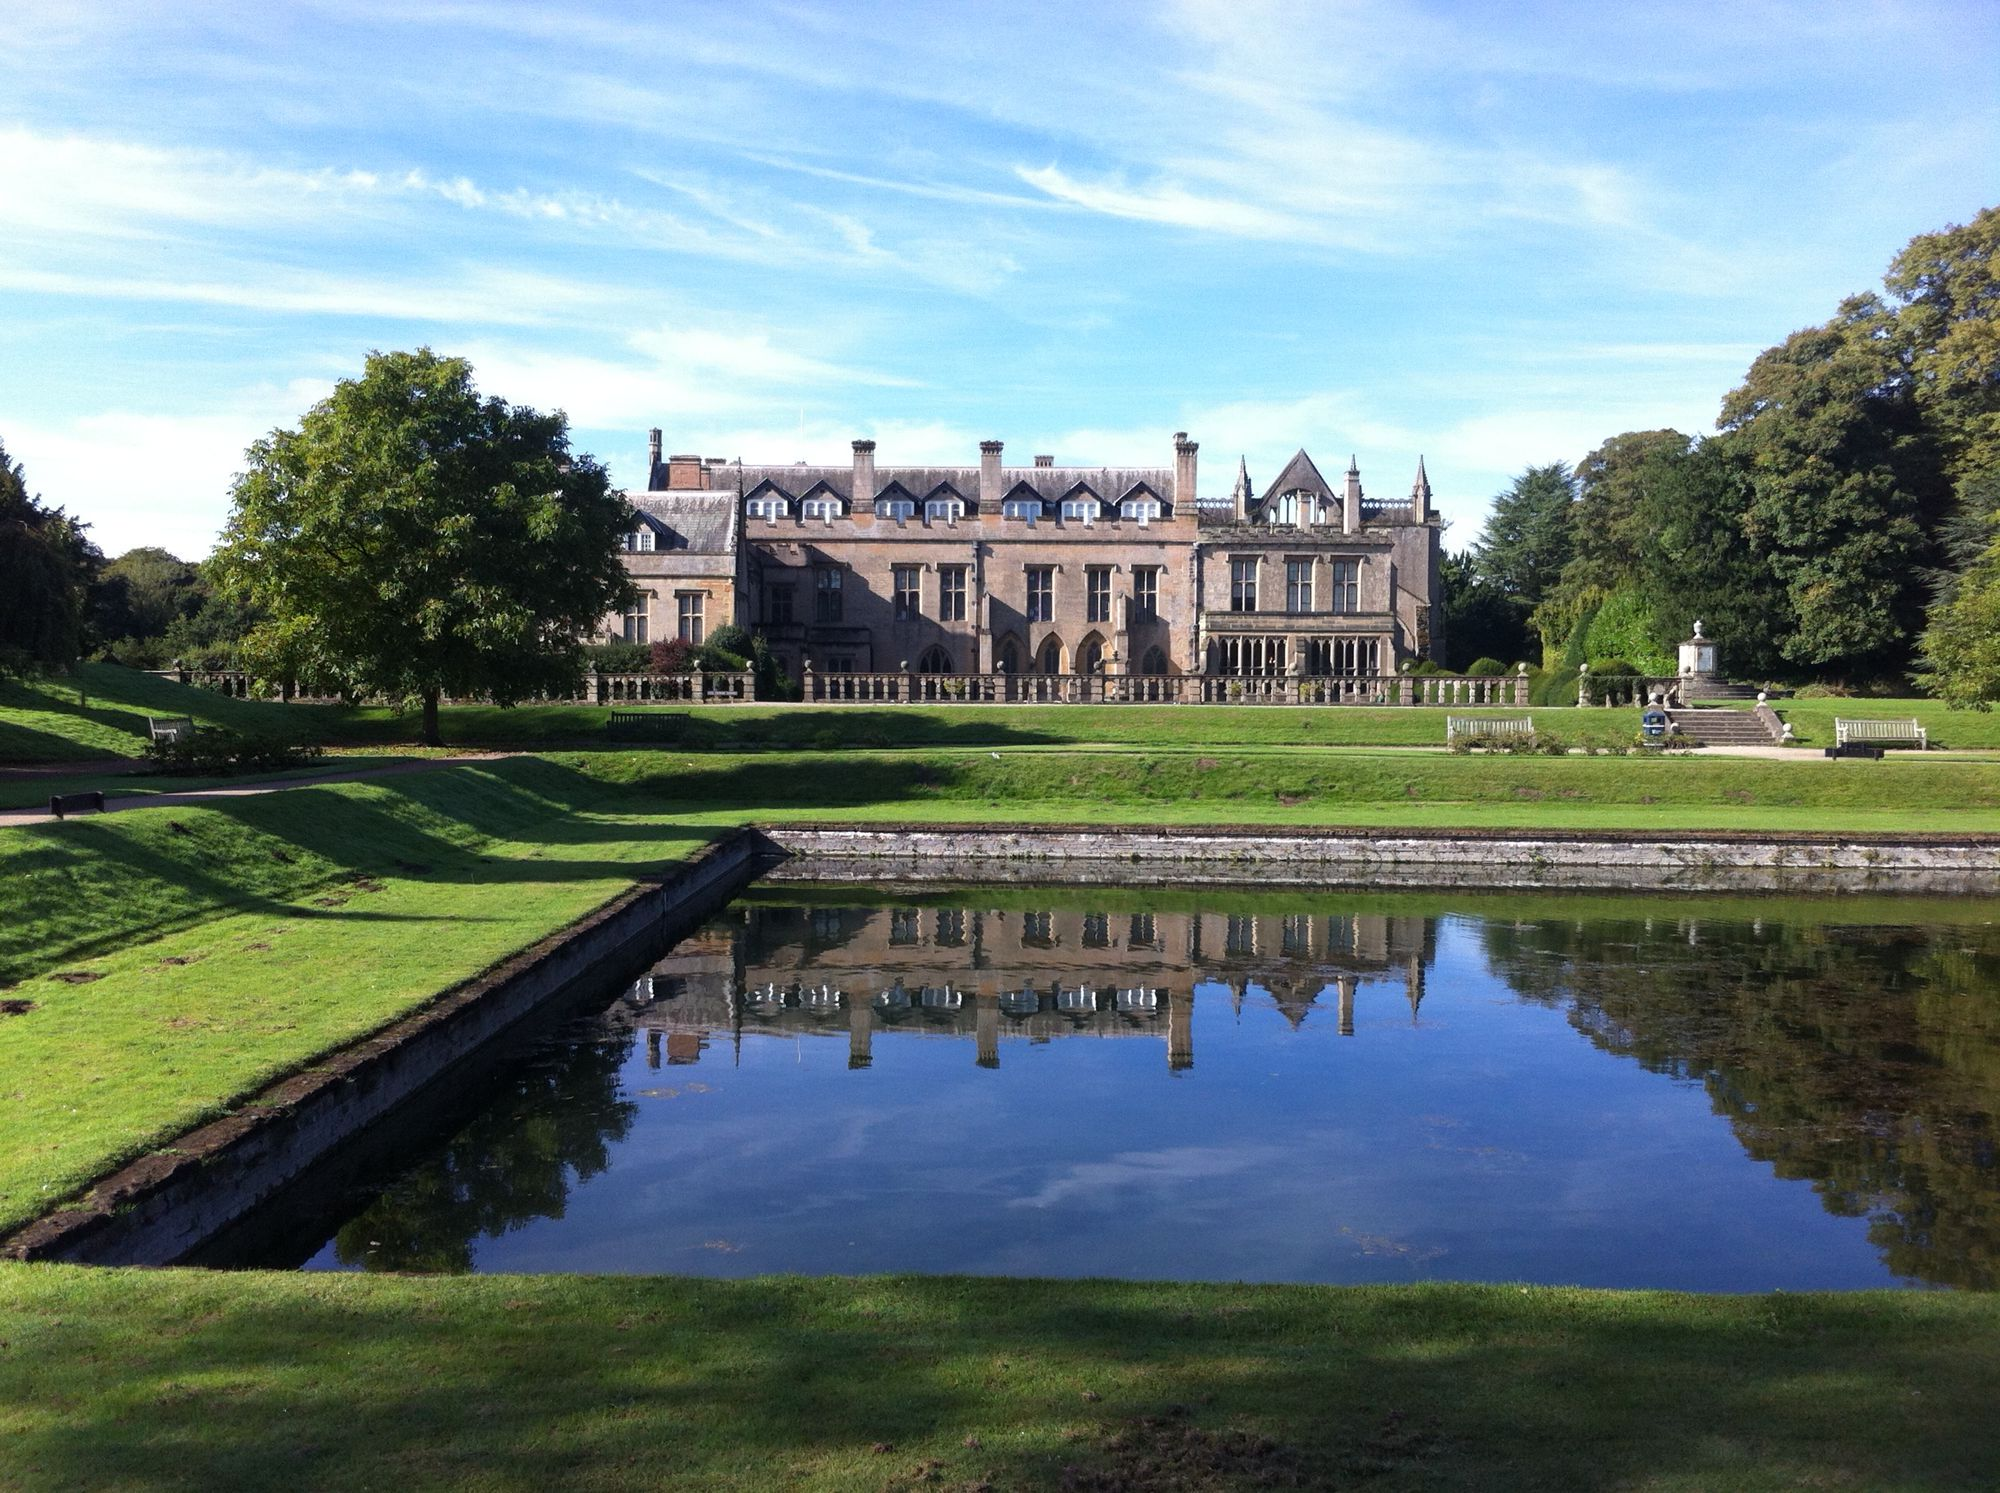 Hotels, Cottages, B&Bs & Glamping in Nottinghamshire